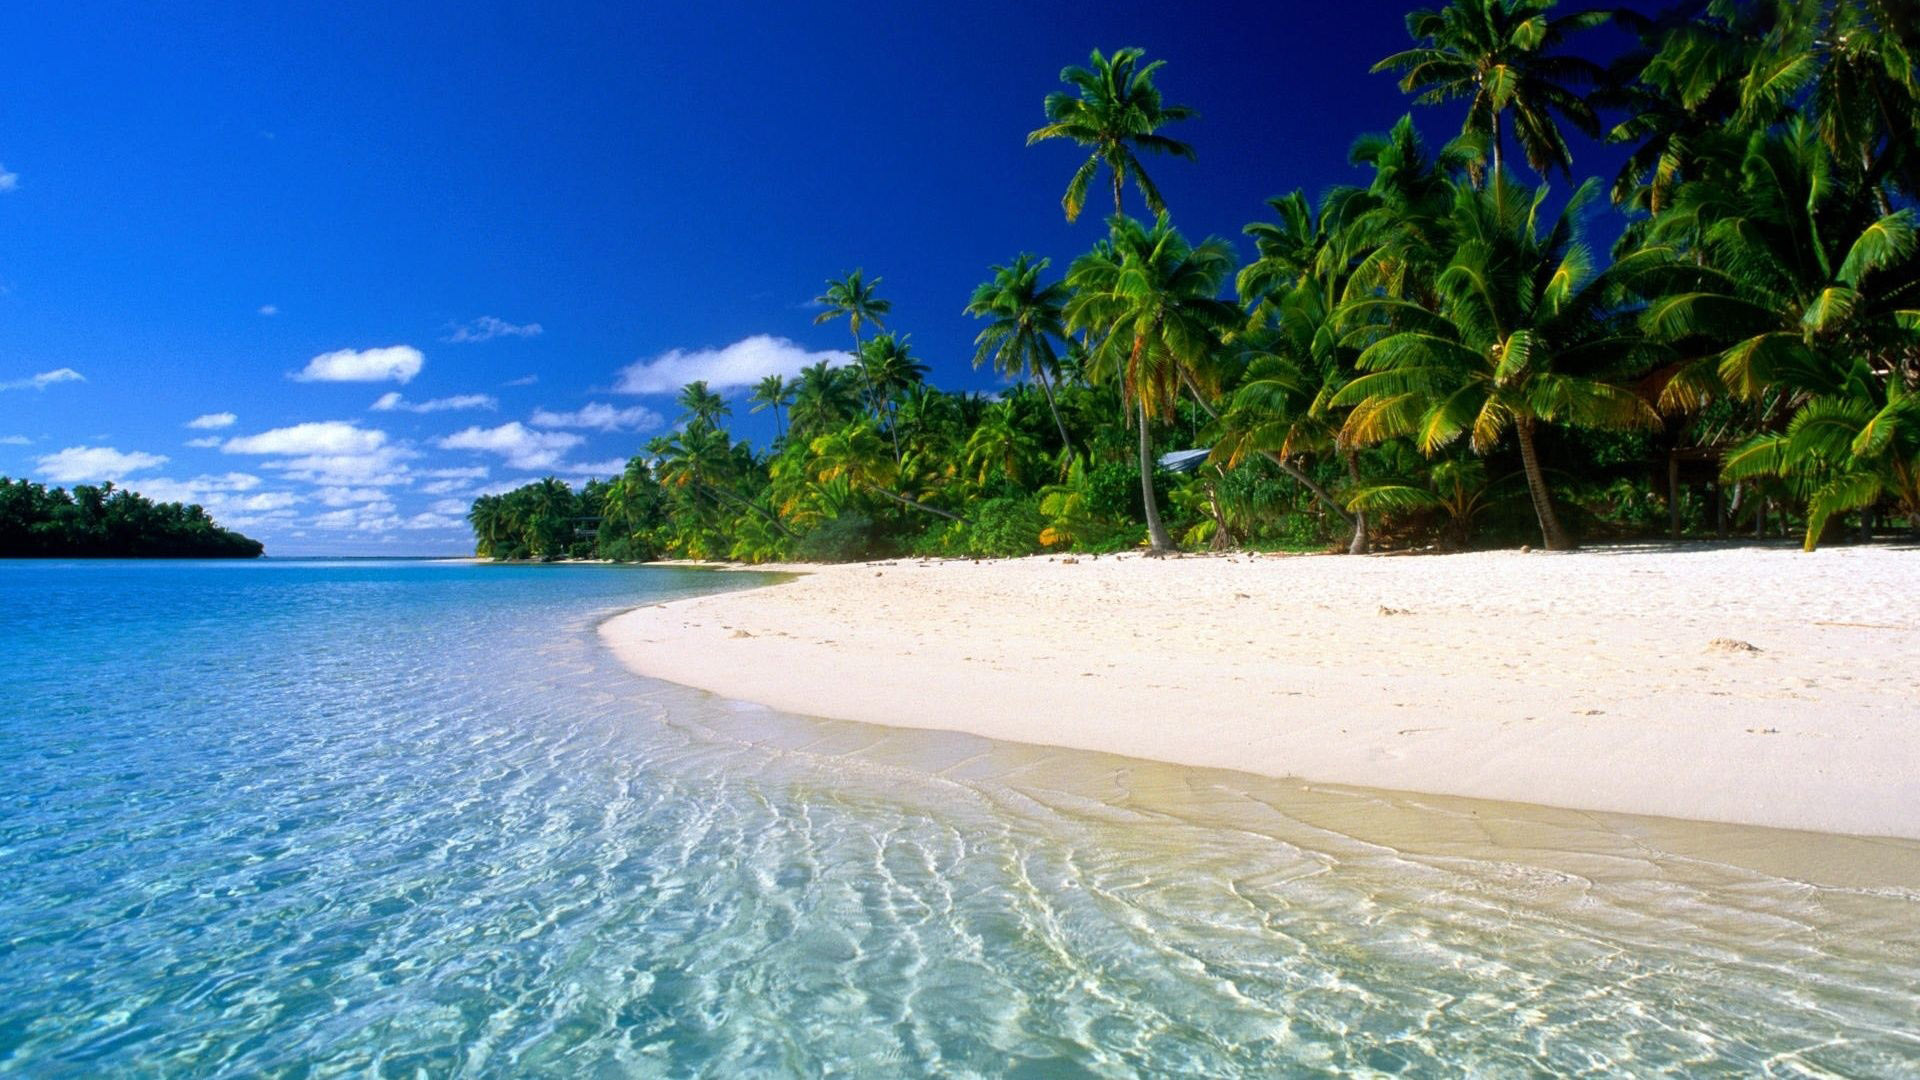 hd wallpaper maldives beach wallpapers55com   Best Wallpapers for 1920x1080